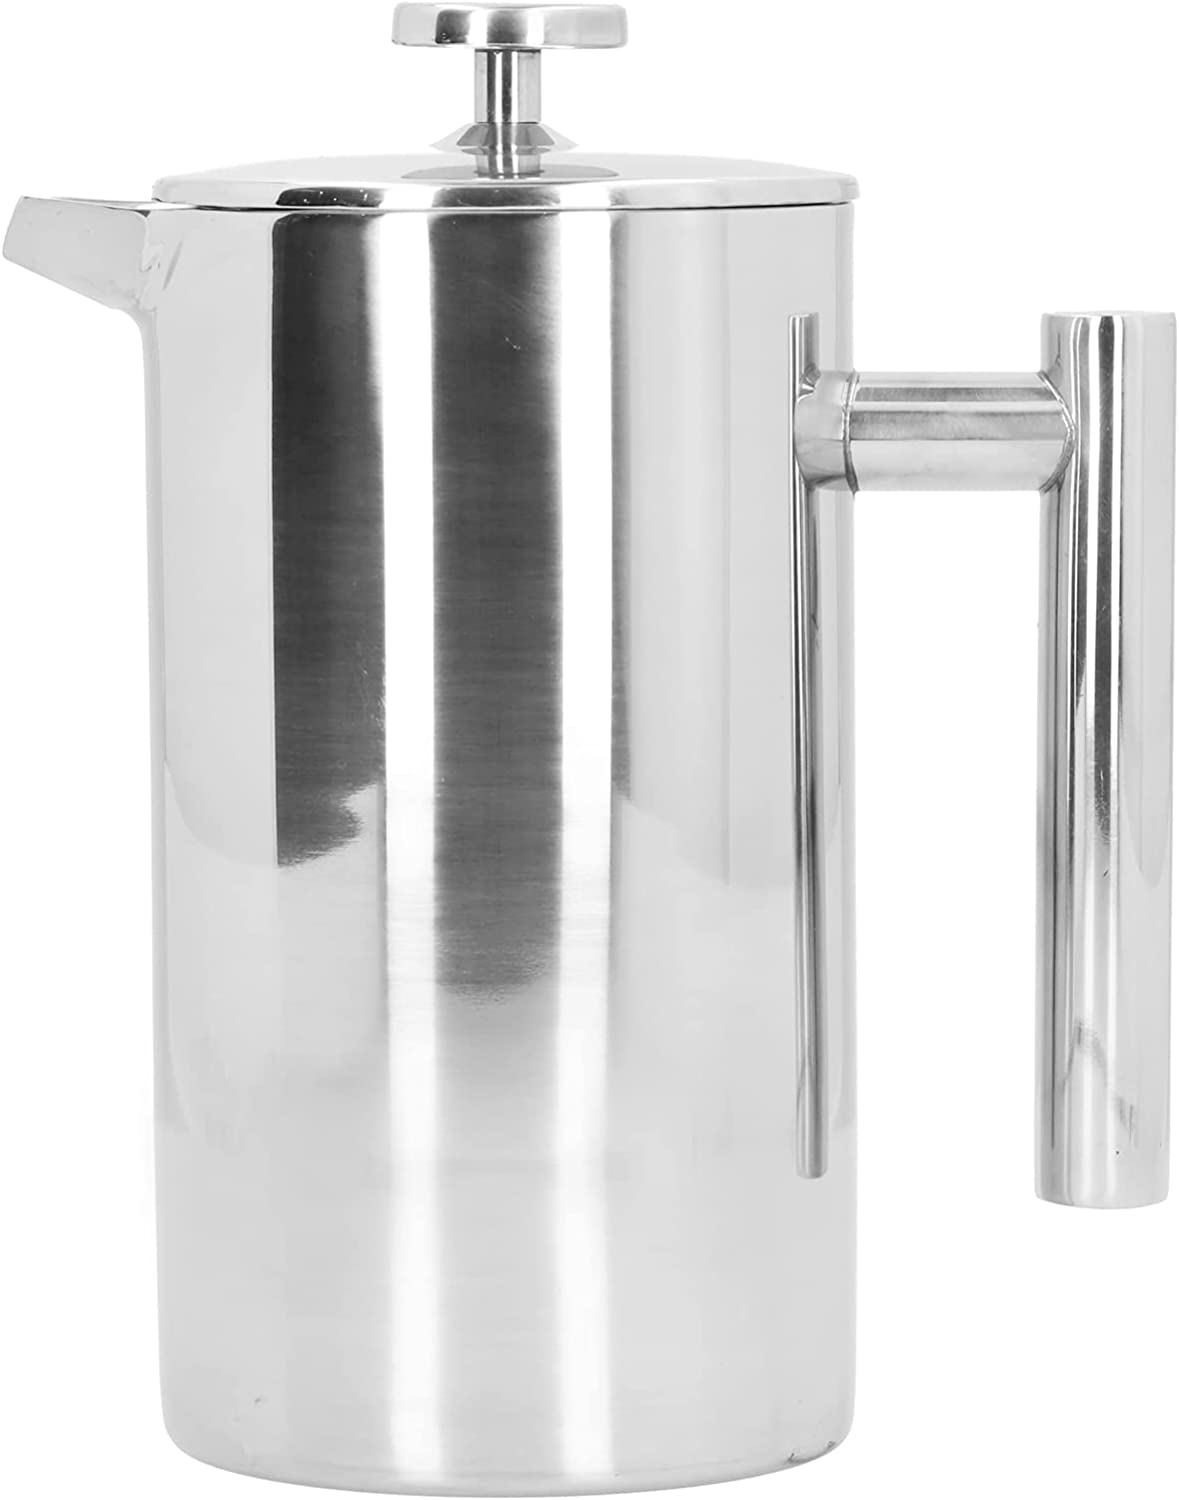 1000ml Double insulation Atlanta Mall Hand Brewing Steel Max 66% OFF Stainless Pot Coffee